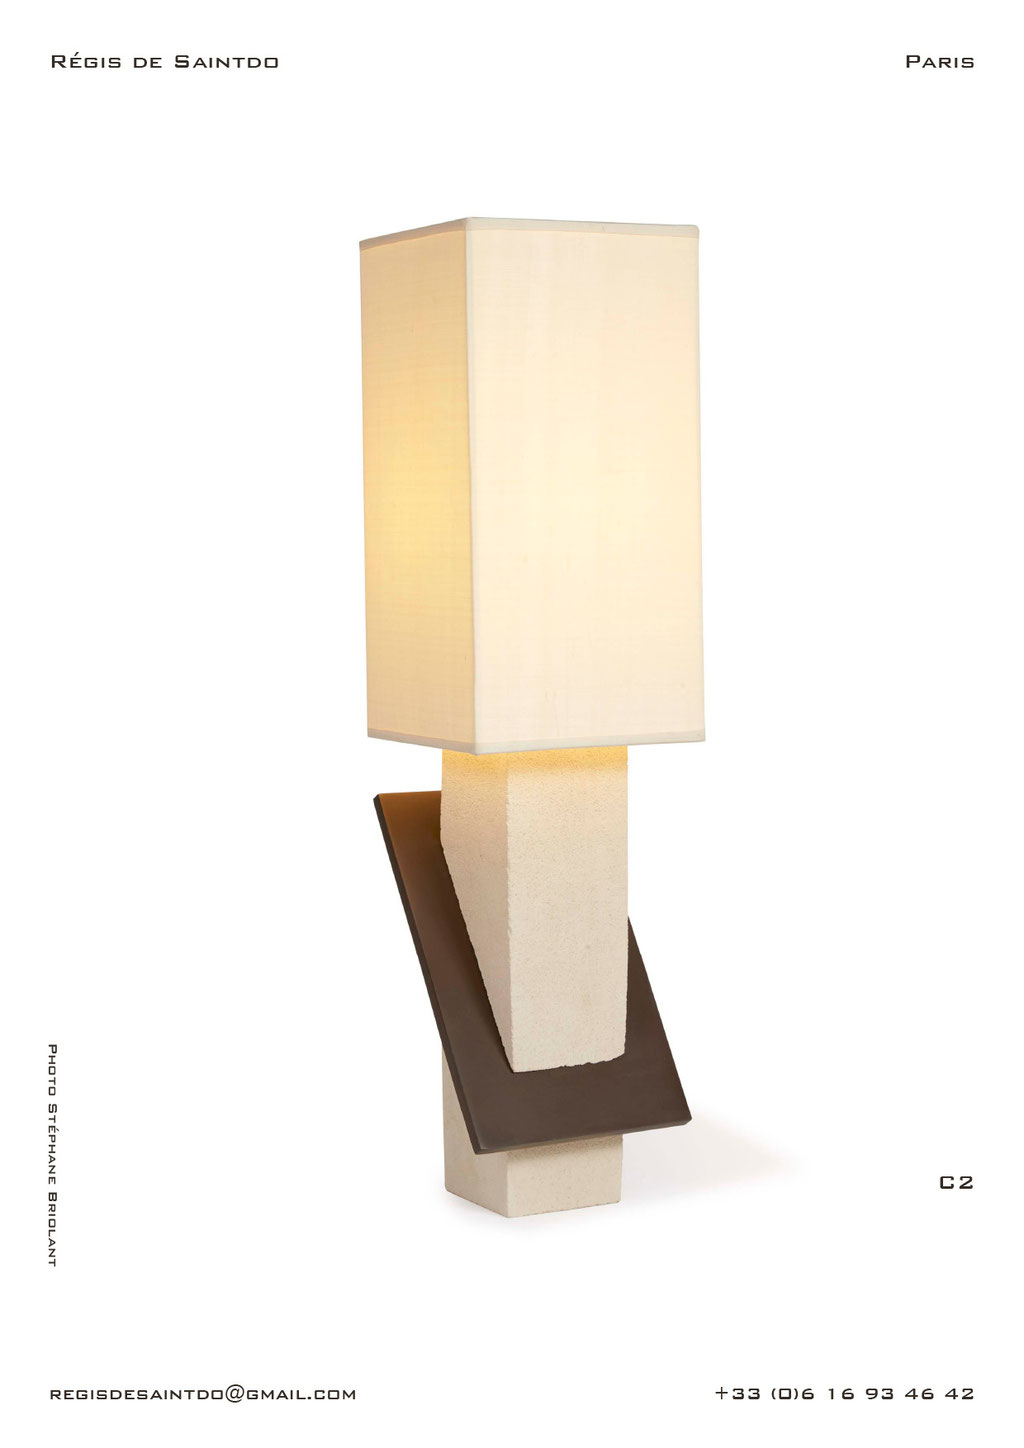 Lampe-C2-céramique-blanche-brute-brune-polie-faite-main-unique